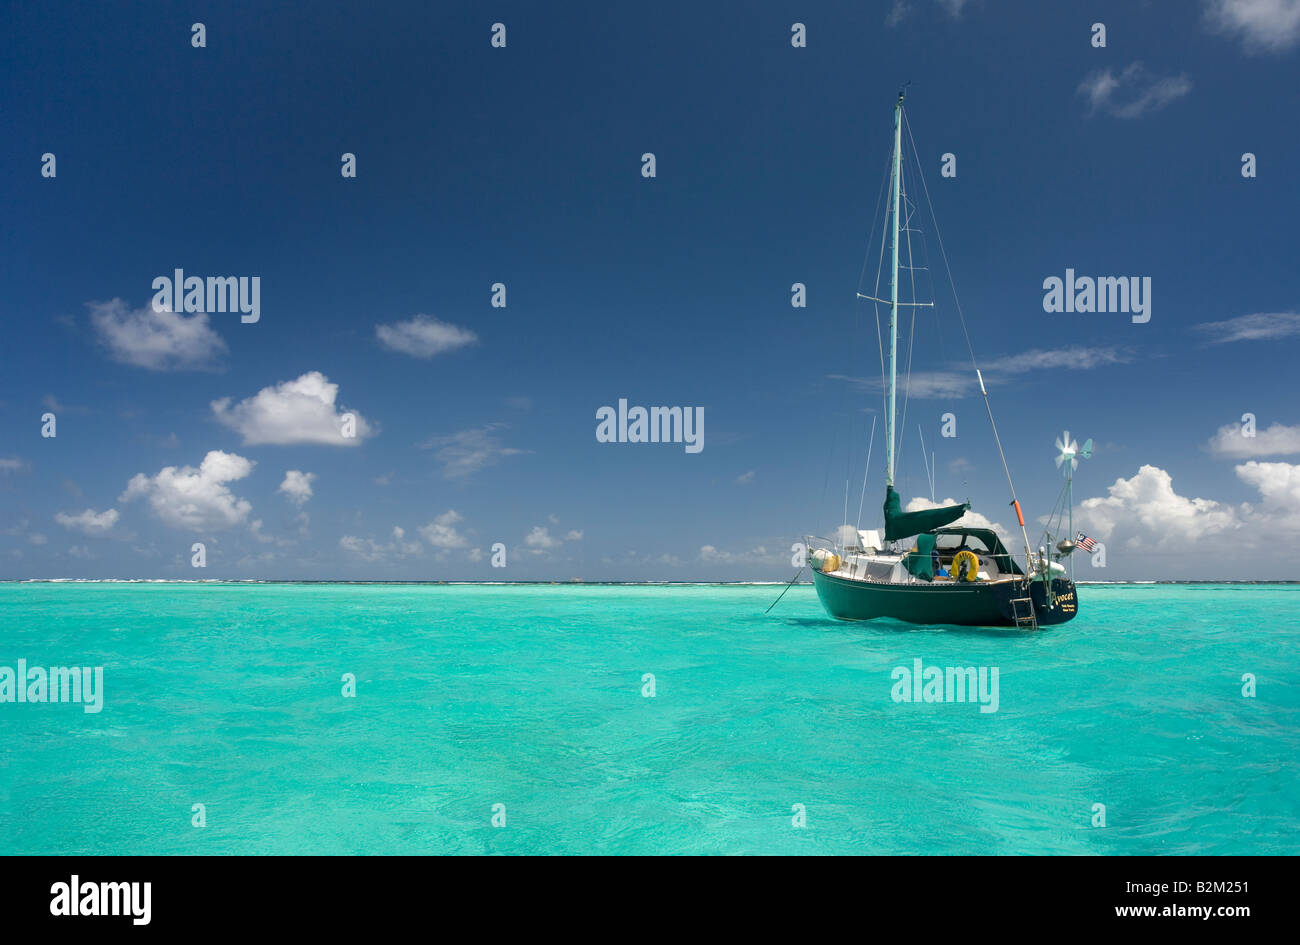 A lone cruising sailboat on the Caribbean This one was at teh Tobago Cays just inside Horseshoe Reef - Stock Image